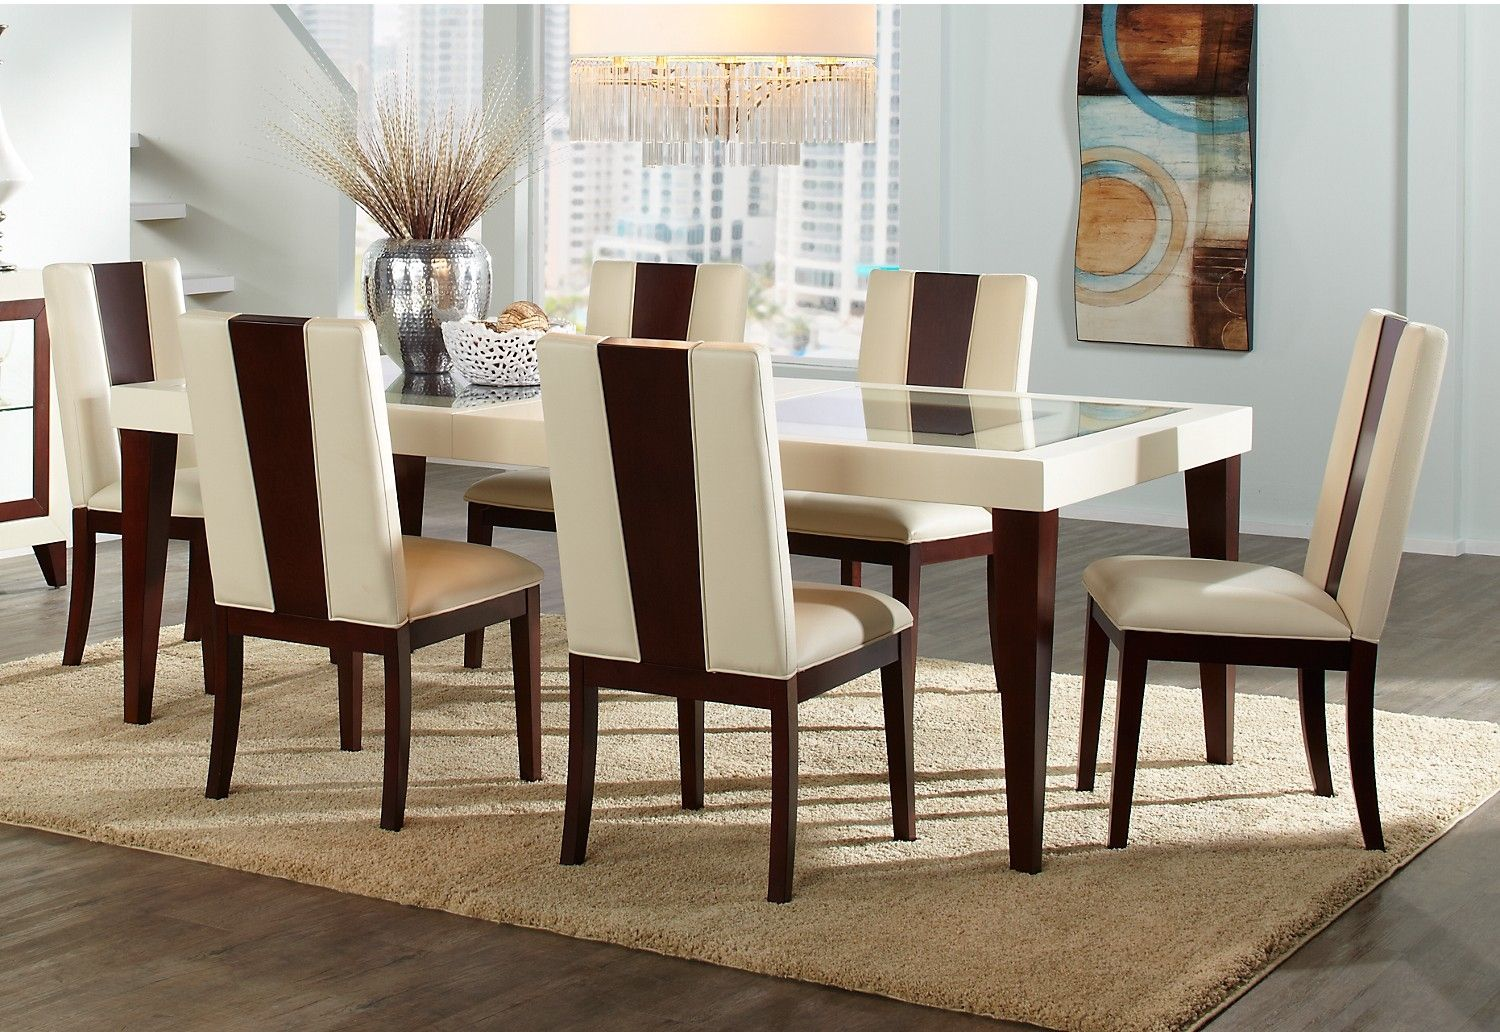 the brick dining room | Zeno 7-Piece Dining Package | The Brick | Dining room ...